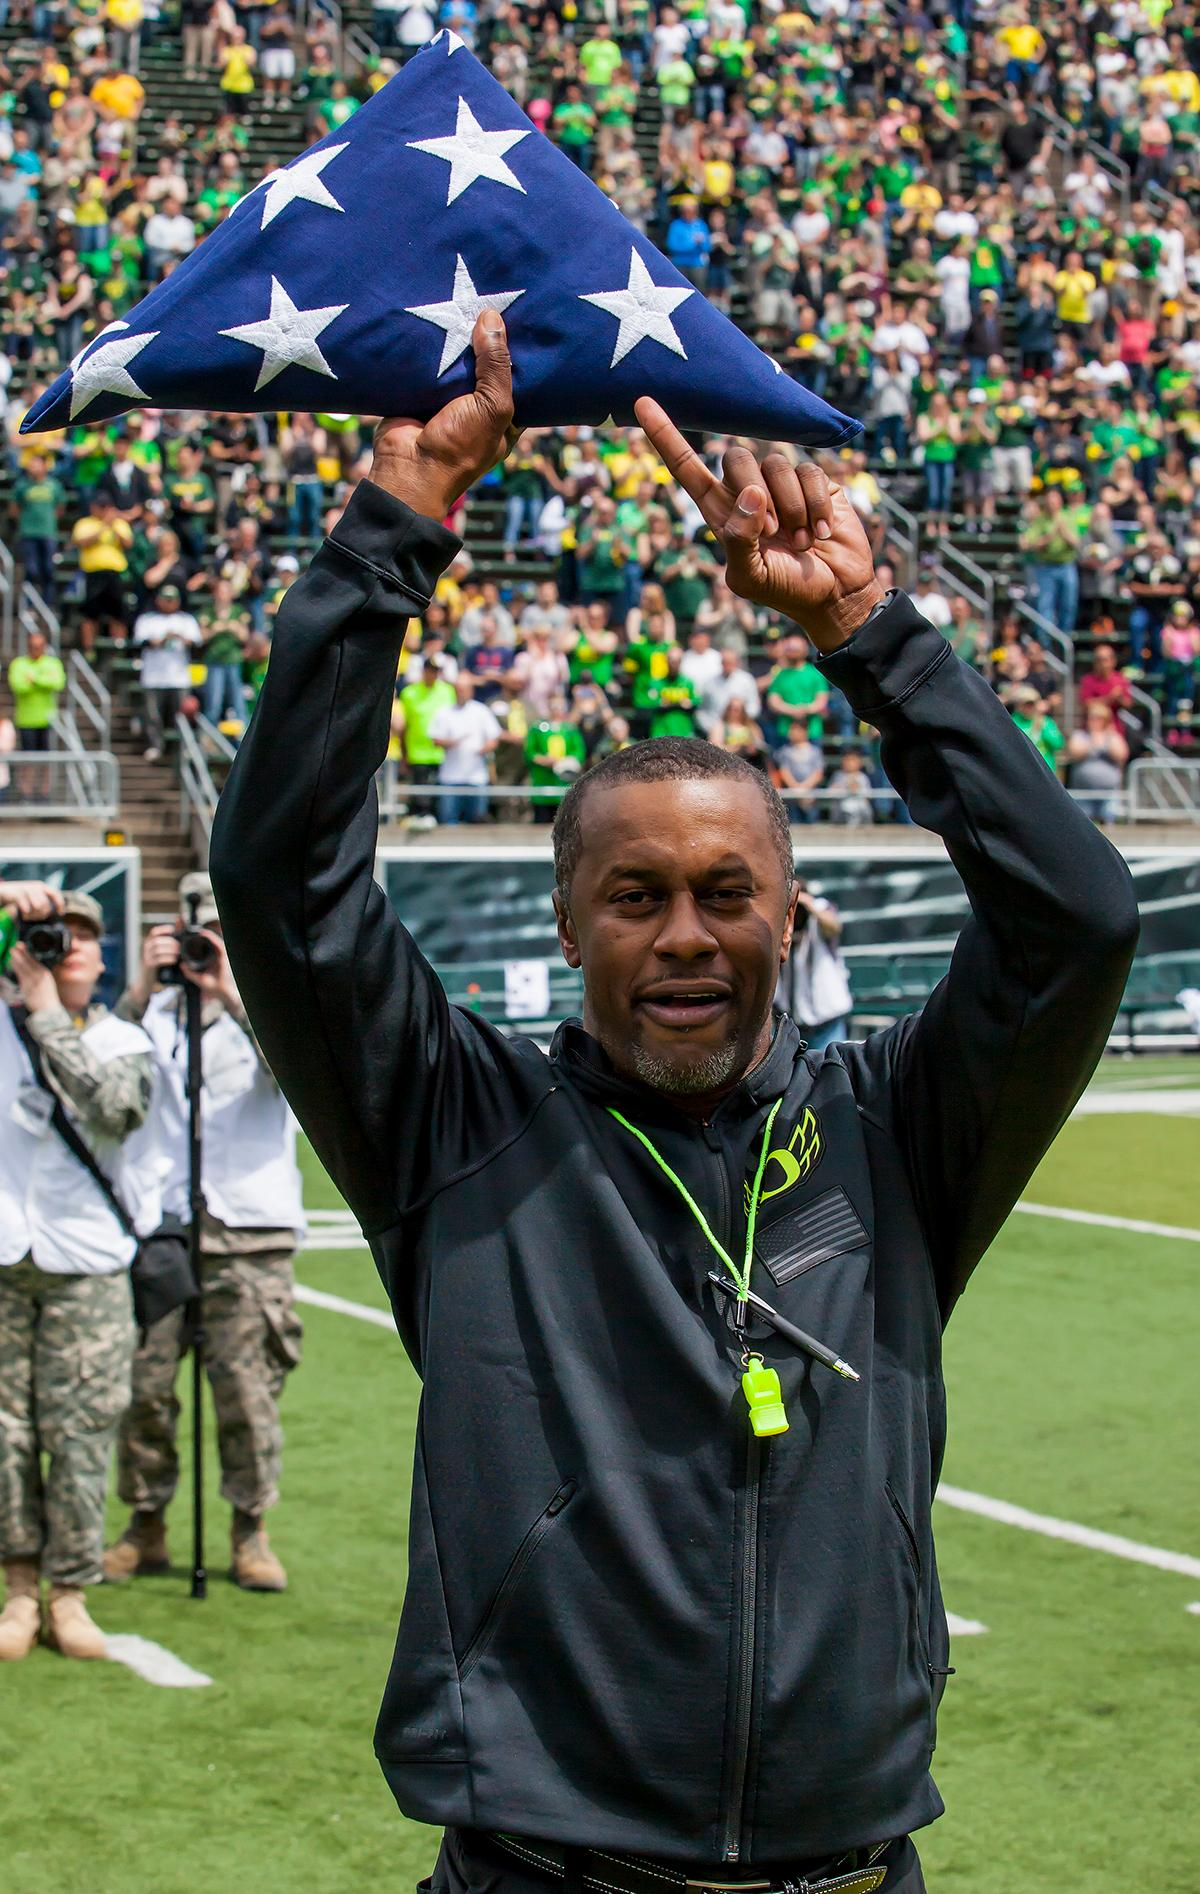 Head Coach Willie Taggart displays an American flag presented to him by service members of the United States Military during half time. The 2017 Oregon Ducks Spring Game provided fans their first glimpse at the team under new Head Coach Willie Taggart's direction. Team Free defeated Team Brave 34-11 on a sunny dat at Autzen Stadium in Eugene, Oregon. Photo by Ben Lonergan, Oregon News Lab